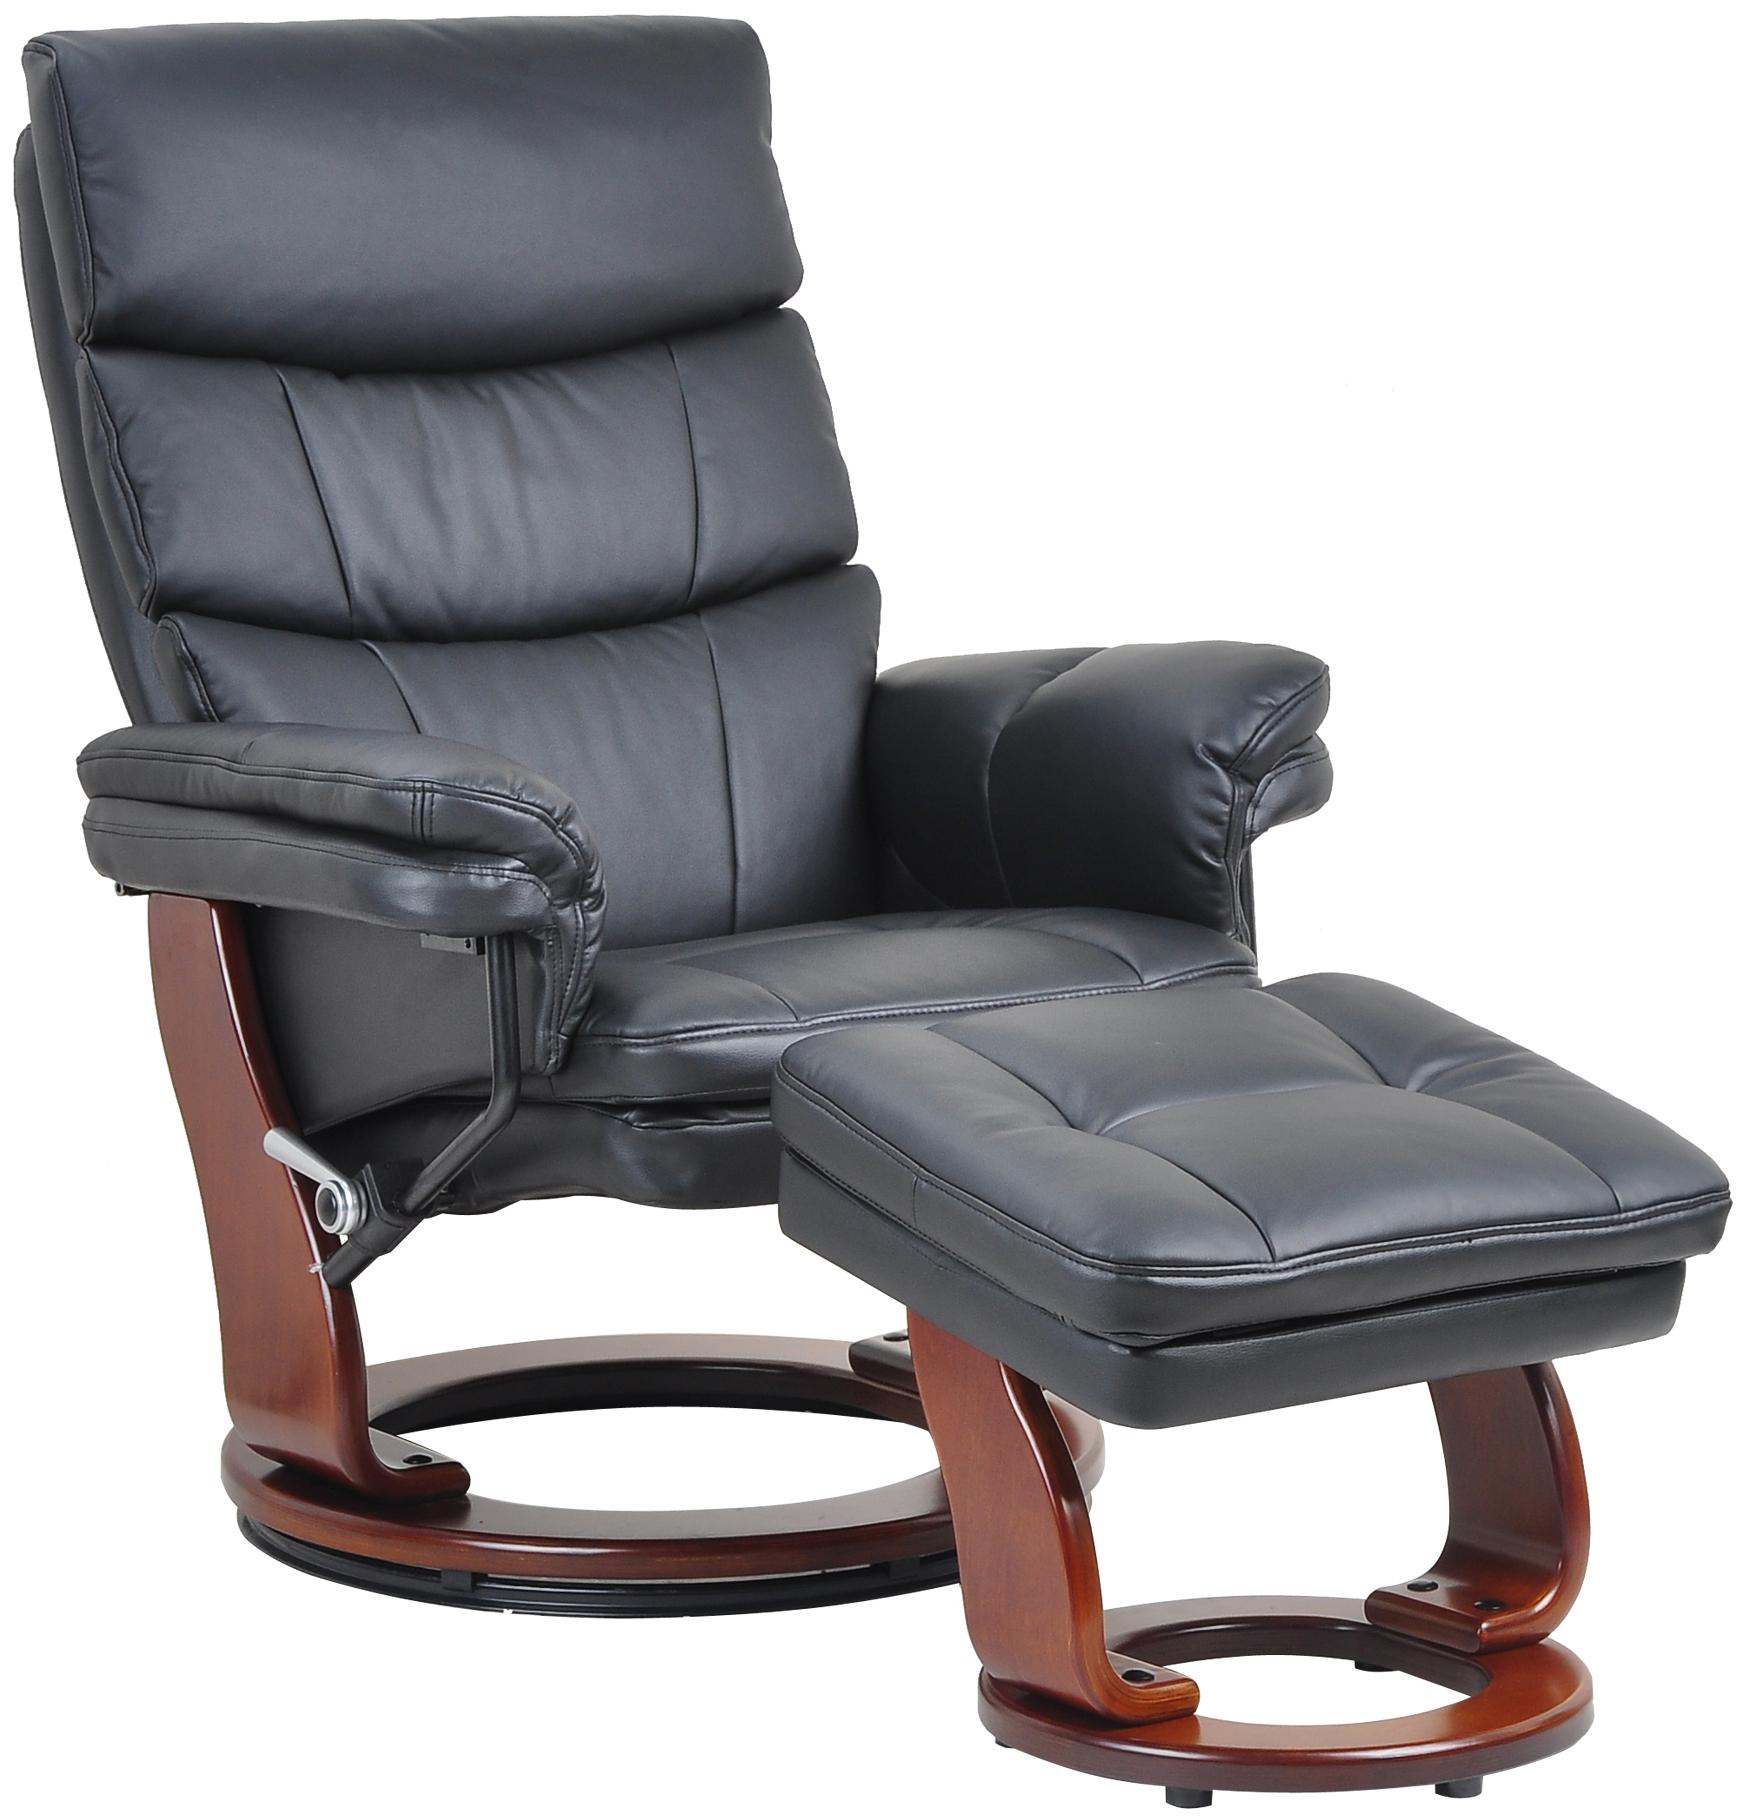 7584 Recliner and Ottoman at Dream Home Interiors